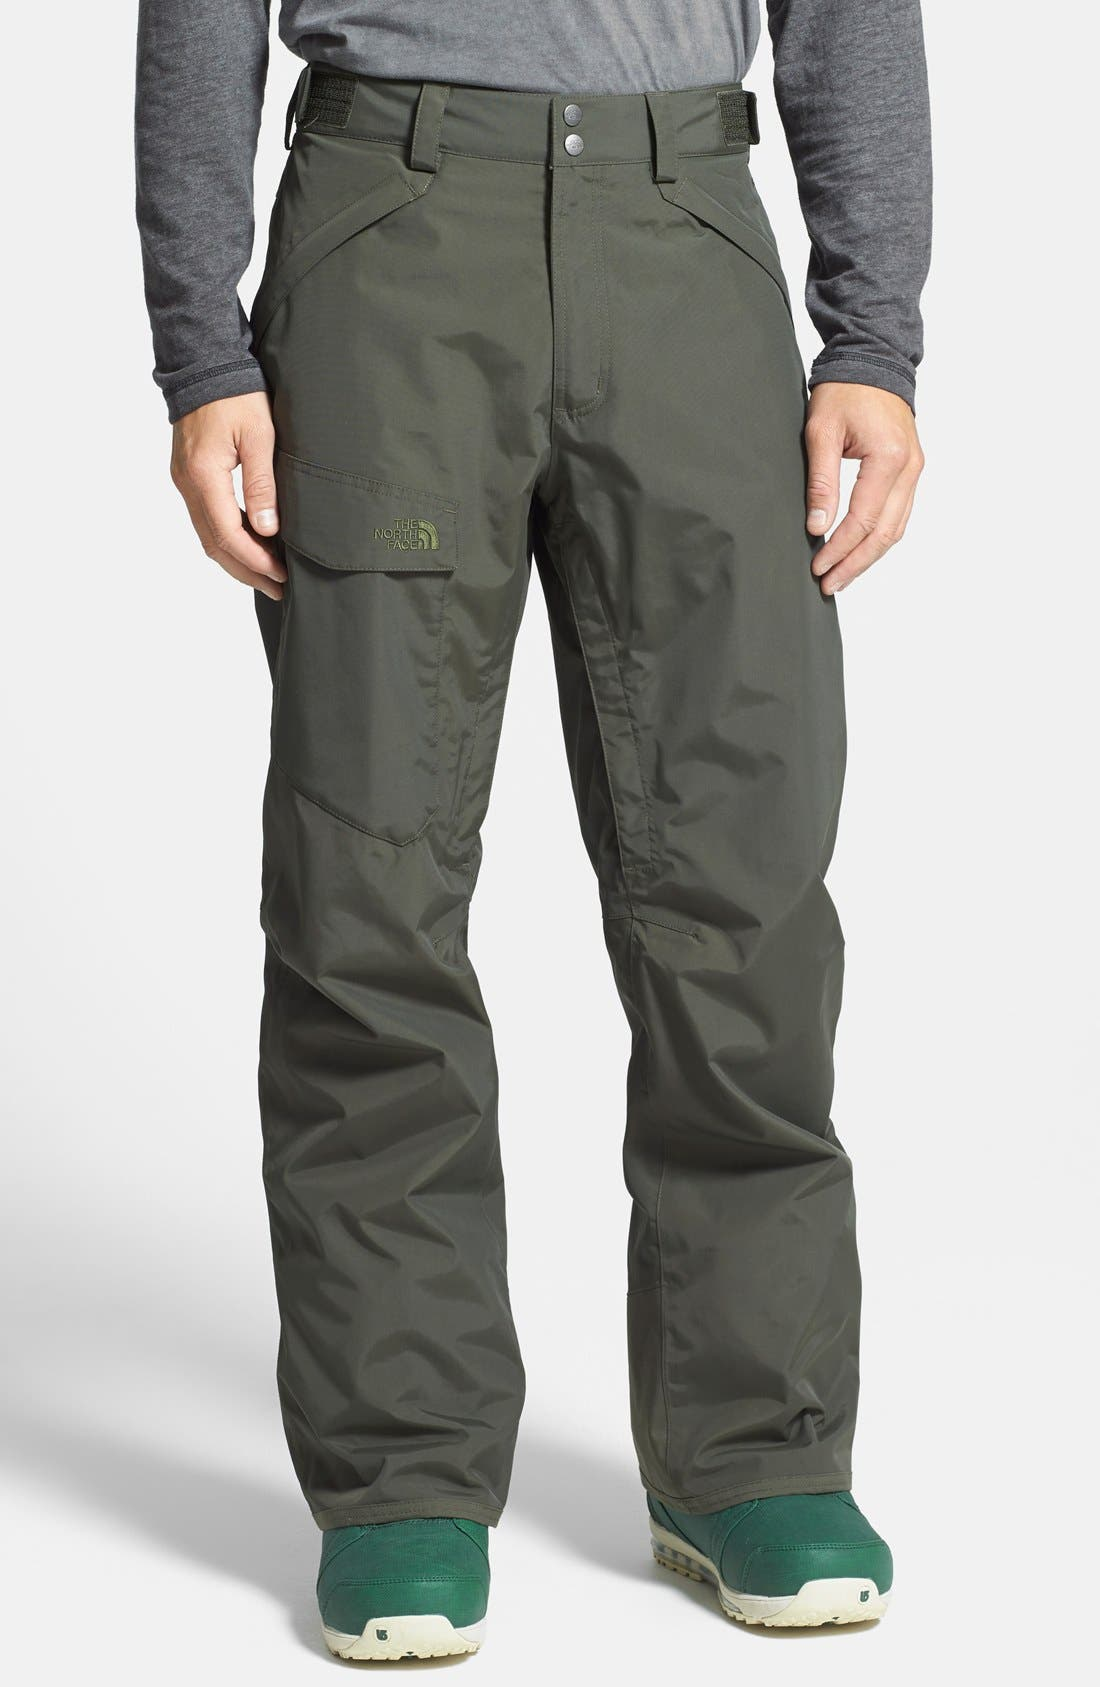 Alternate Image 1 Selected - The North Face 'Freedom' Heatseeker™ Insulated Pants